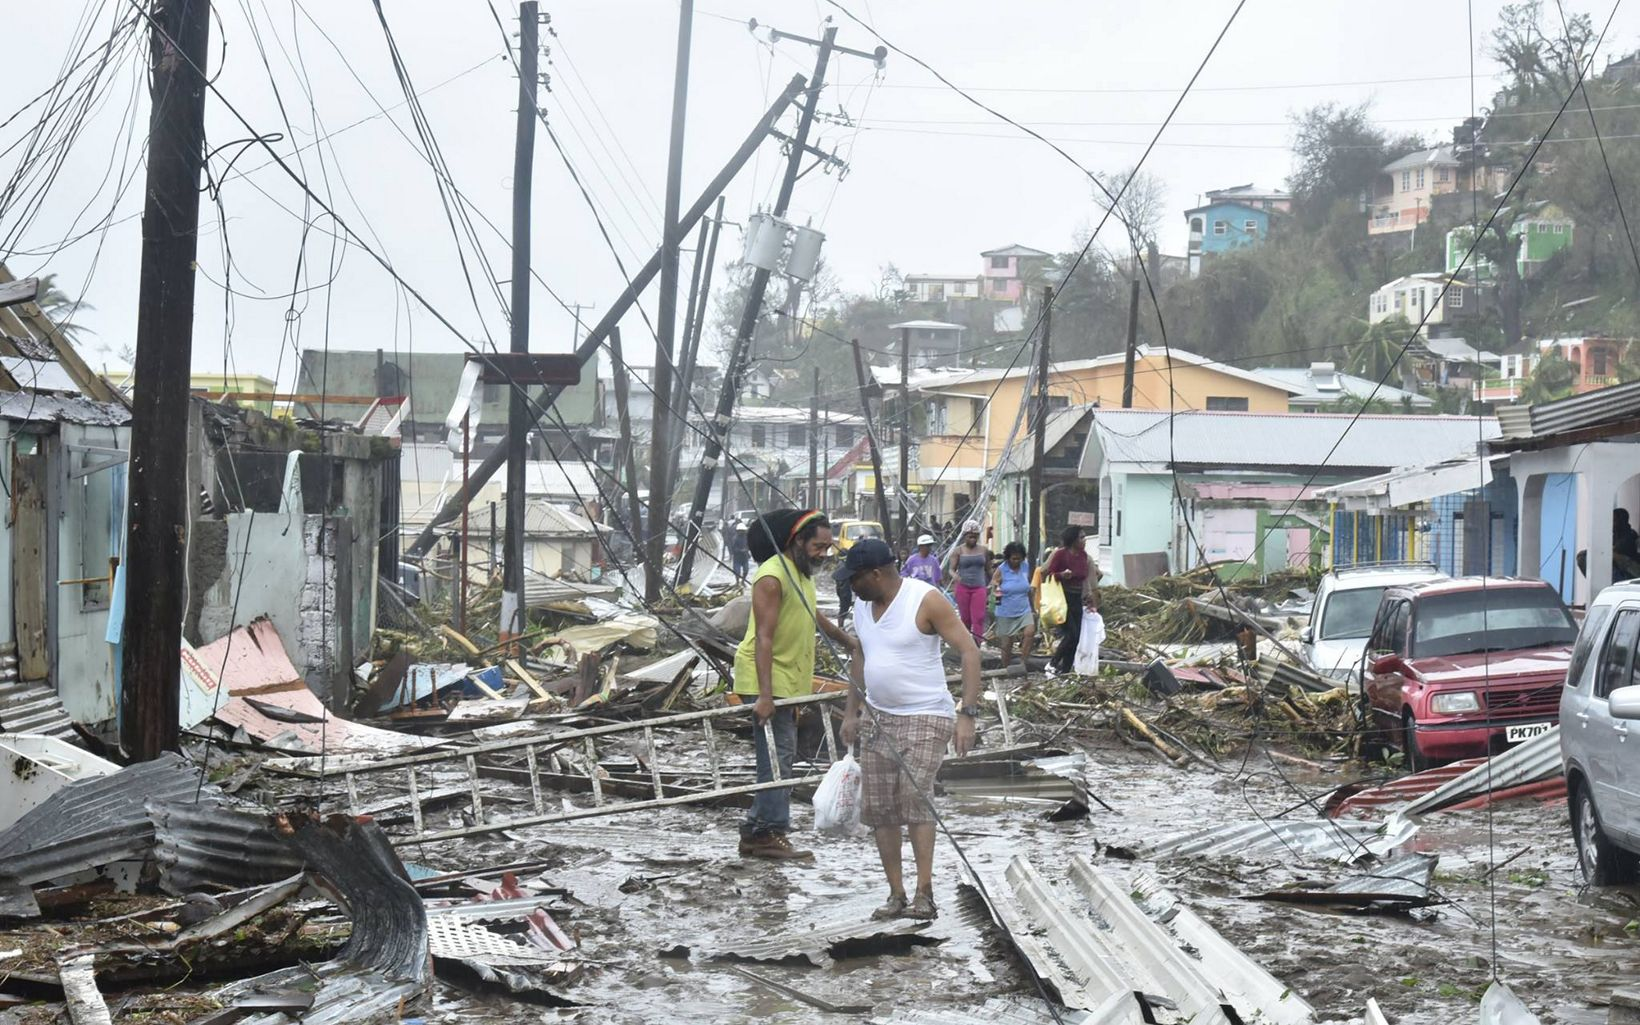 Residents of Dominica clear debris after Hurricane Maria